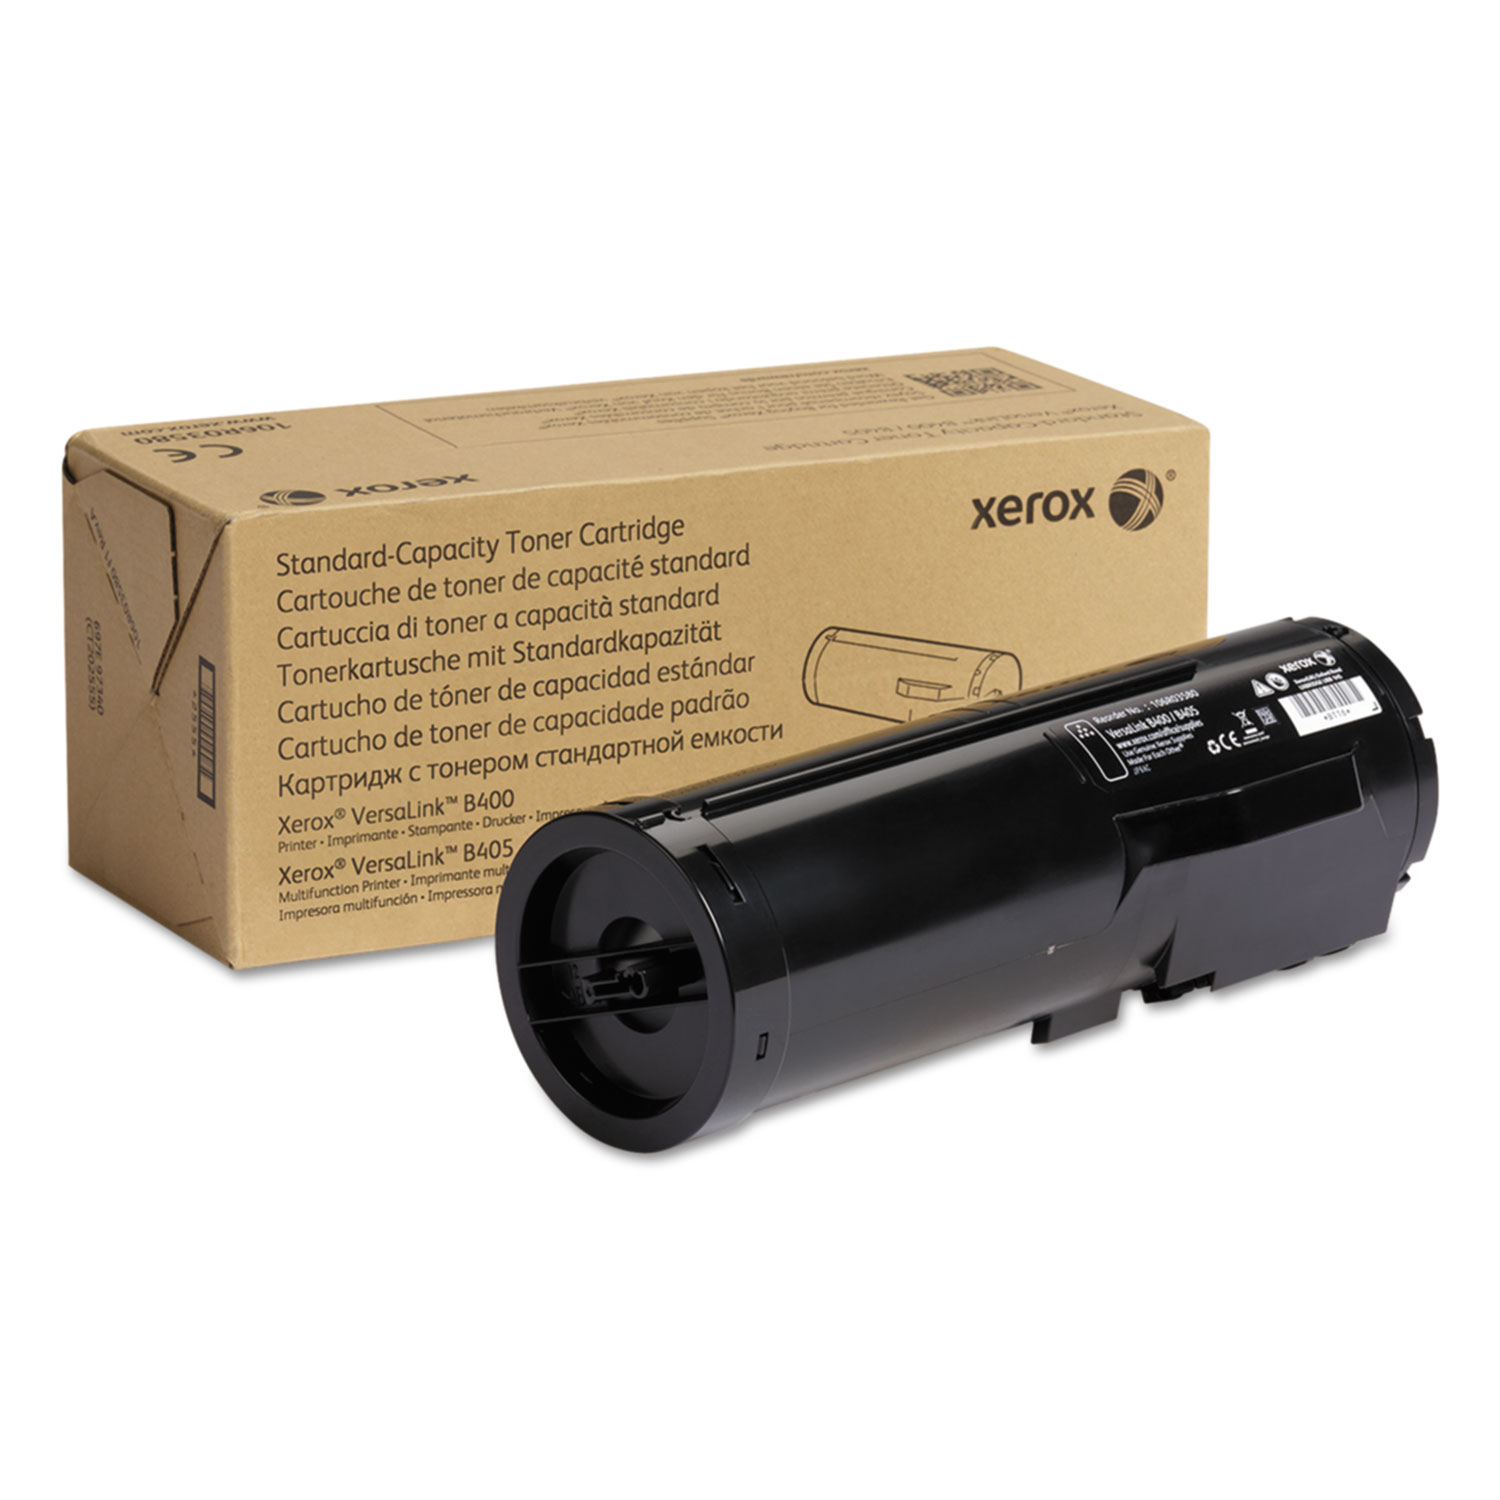 106R03580 Toner, 5900 Page-Yield, Black